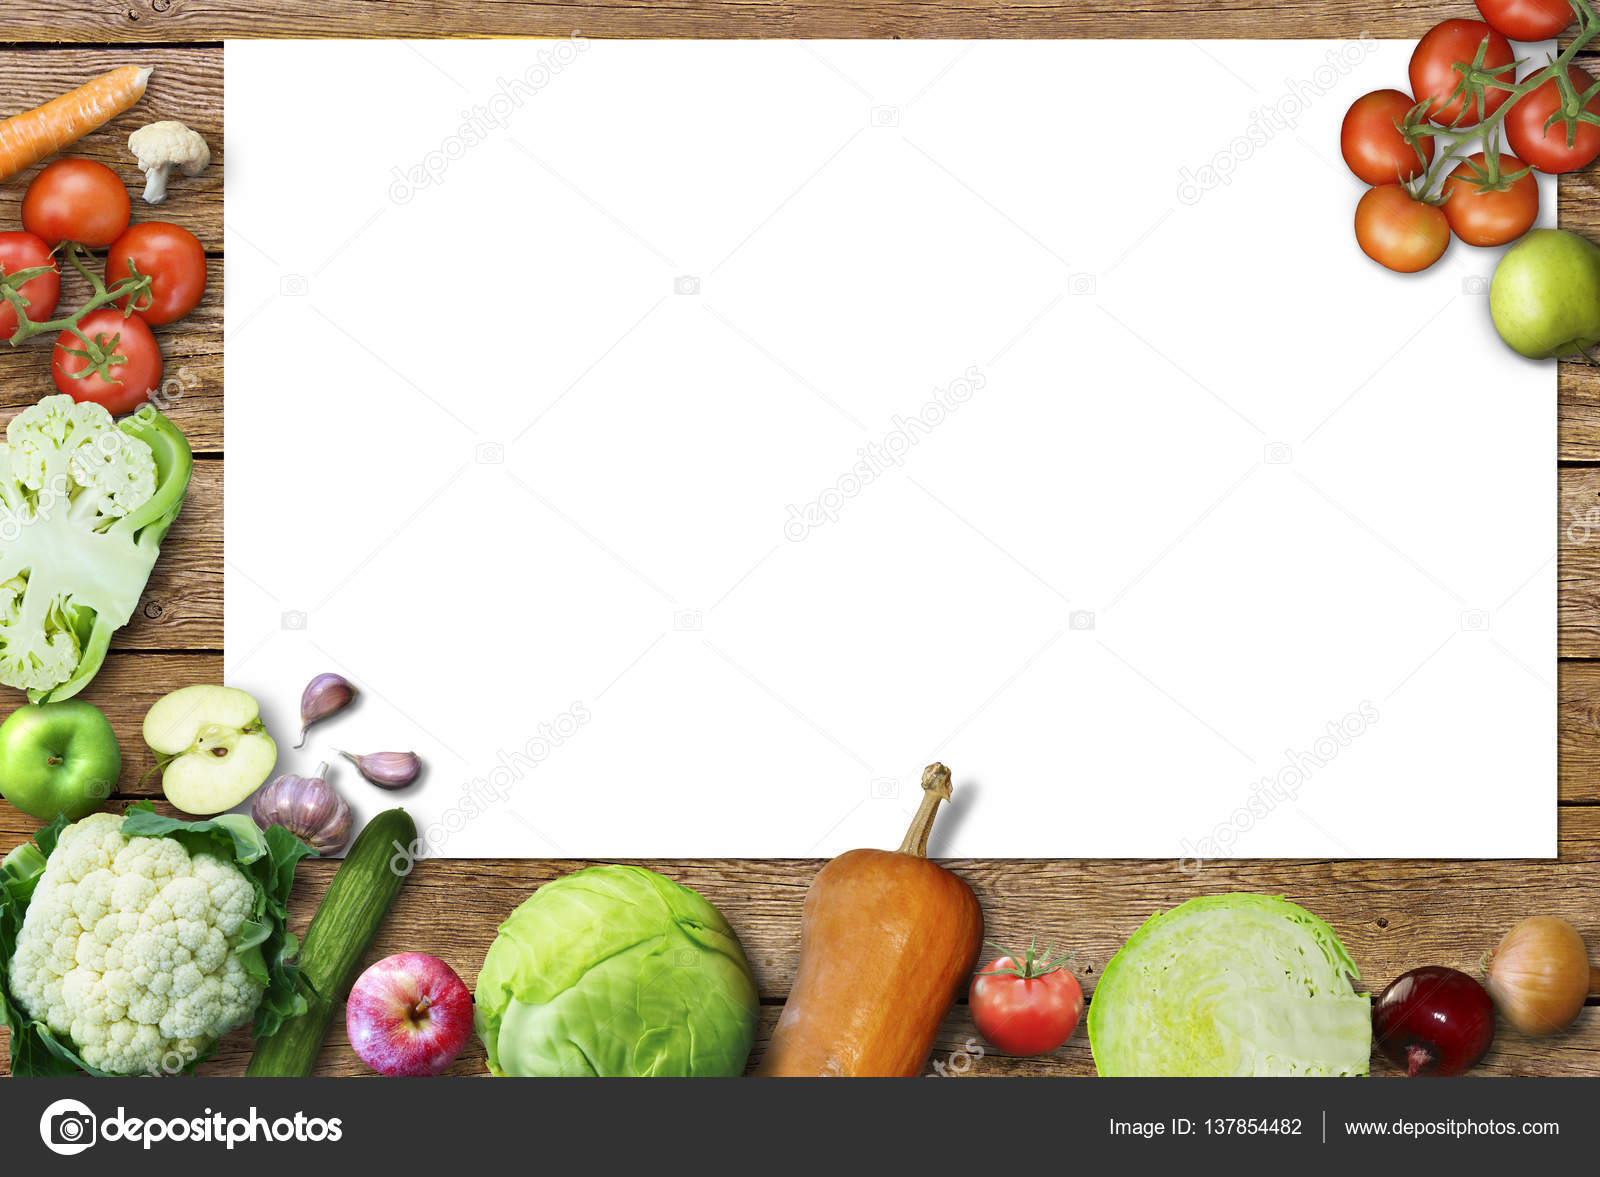 Food background studio photo of different fruits and vegetables - Healthy Food Background Studio Photo Of Different Fruits And Vegetables On Old Wooden Table